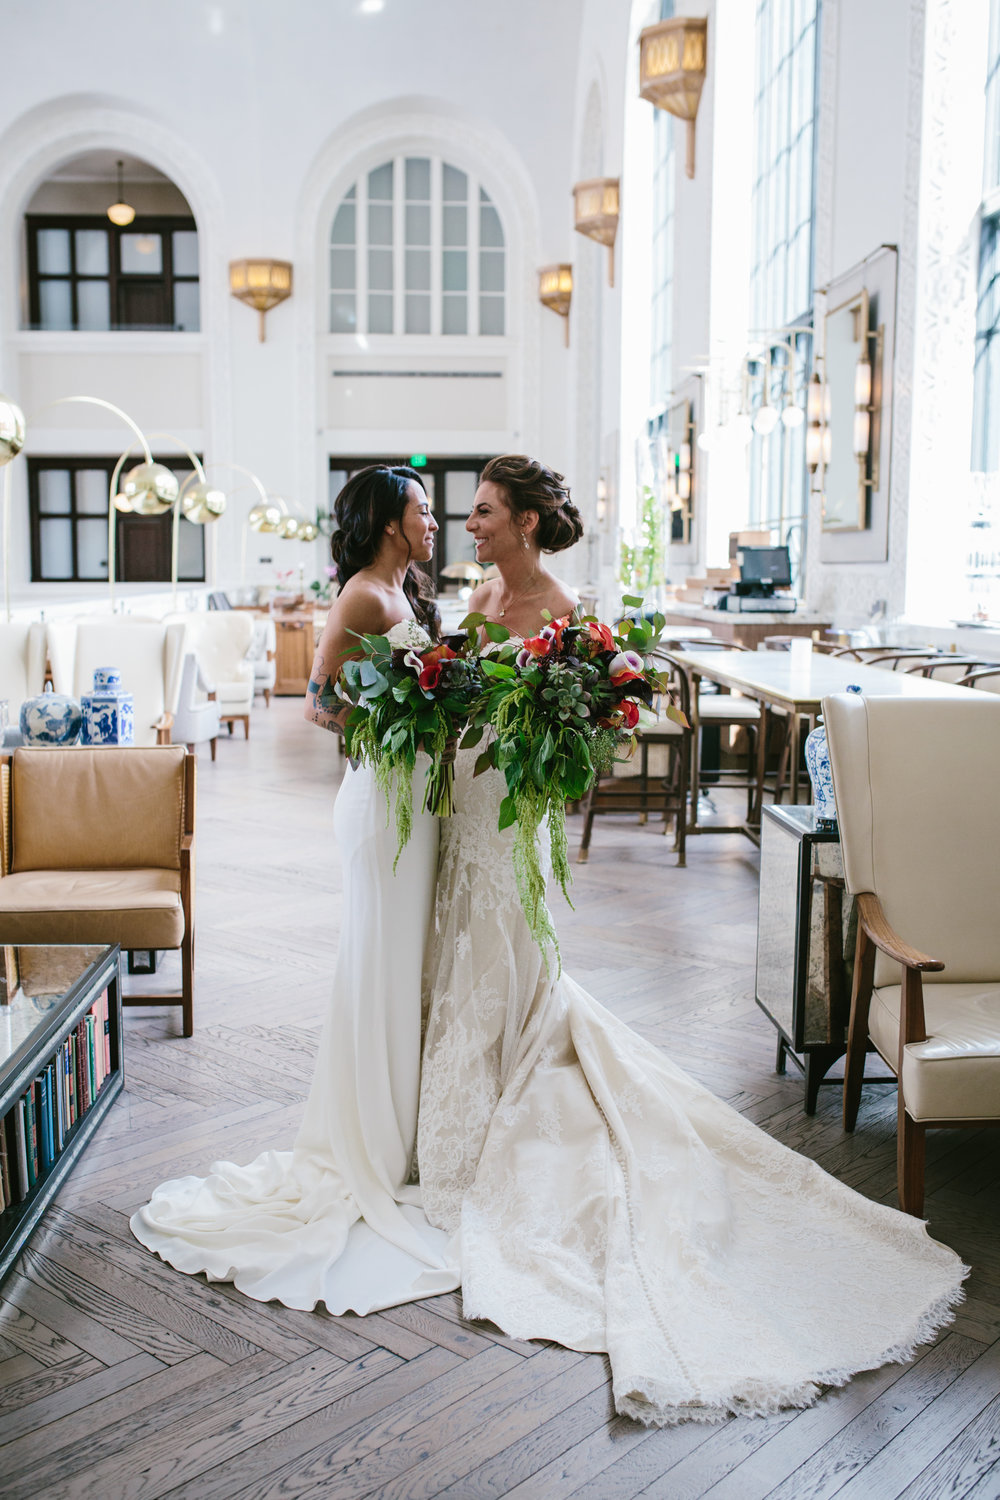 Emily + Jovan - A city-chic wedding in Denver